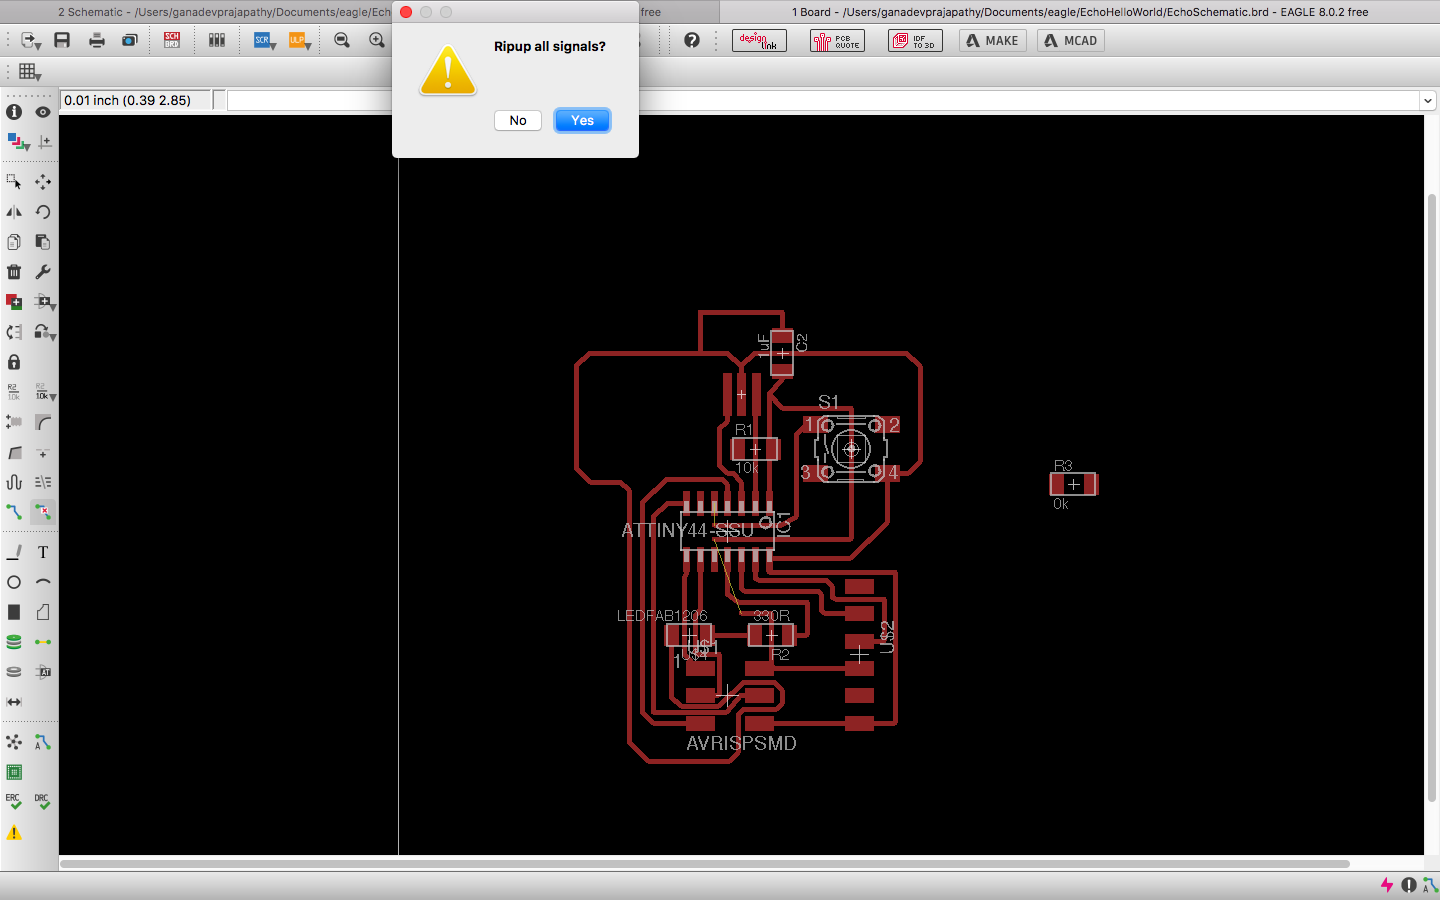 Week 6 Ganadev Prajapathy Explanations Here Http Www Circuitstoday Com Voltage Limiter Circuit I Was Able To Create A Successful Design That Checks Up With The Rules Screenshot Of My Echo Board